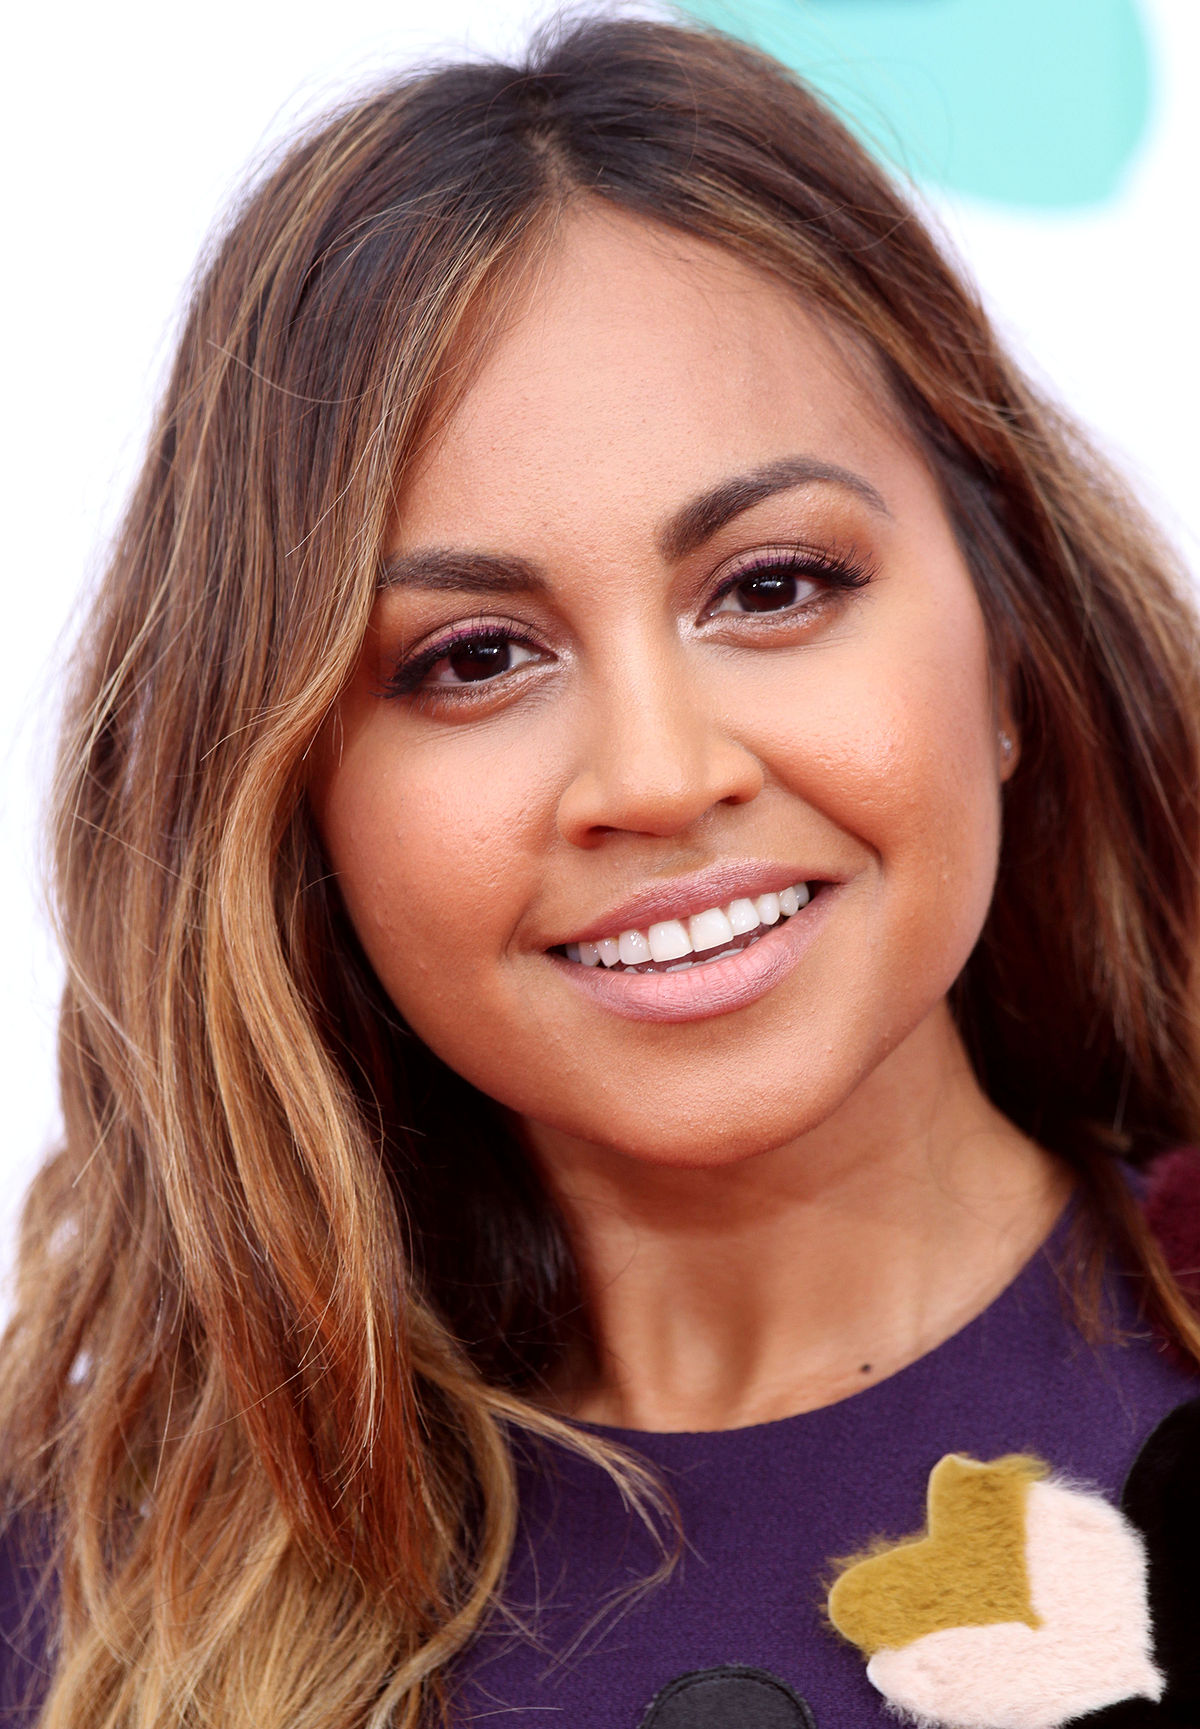 Jessica Mauboy net worth